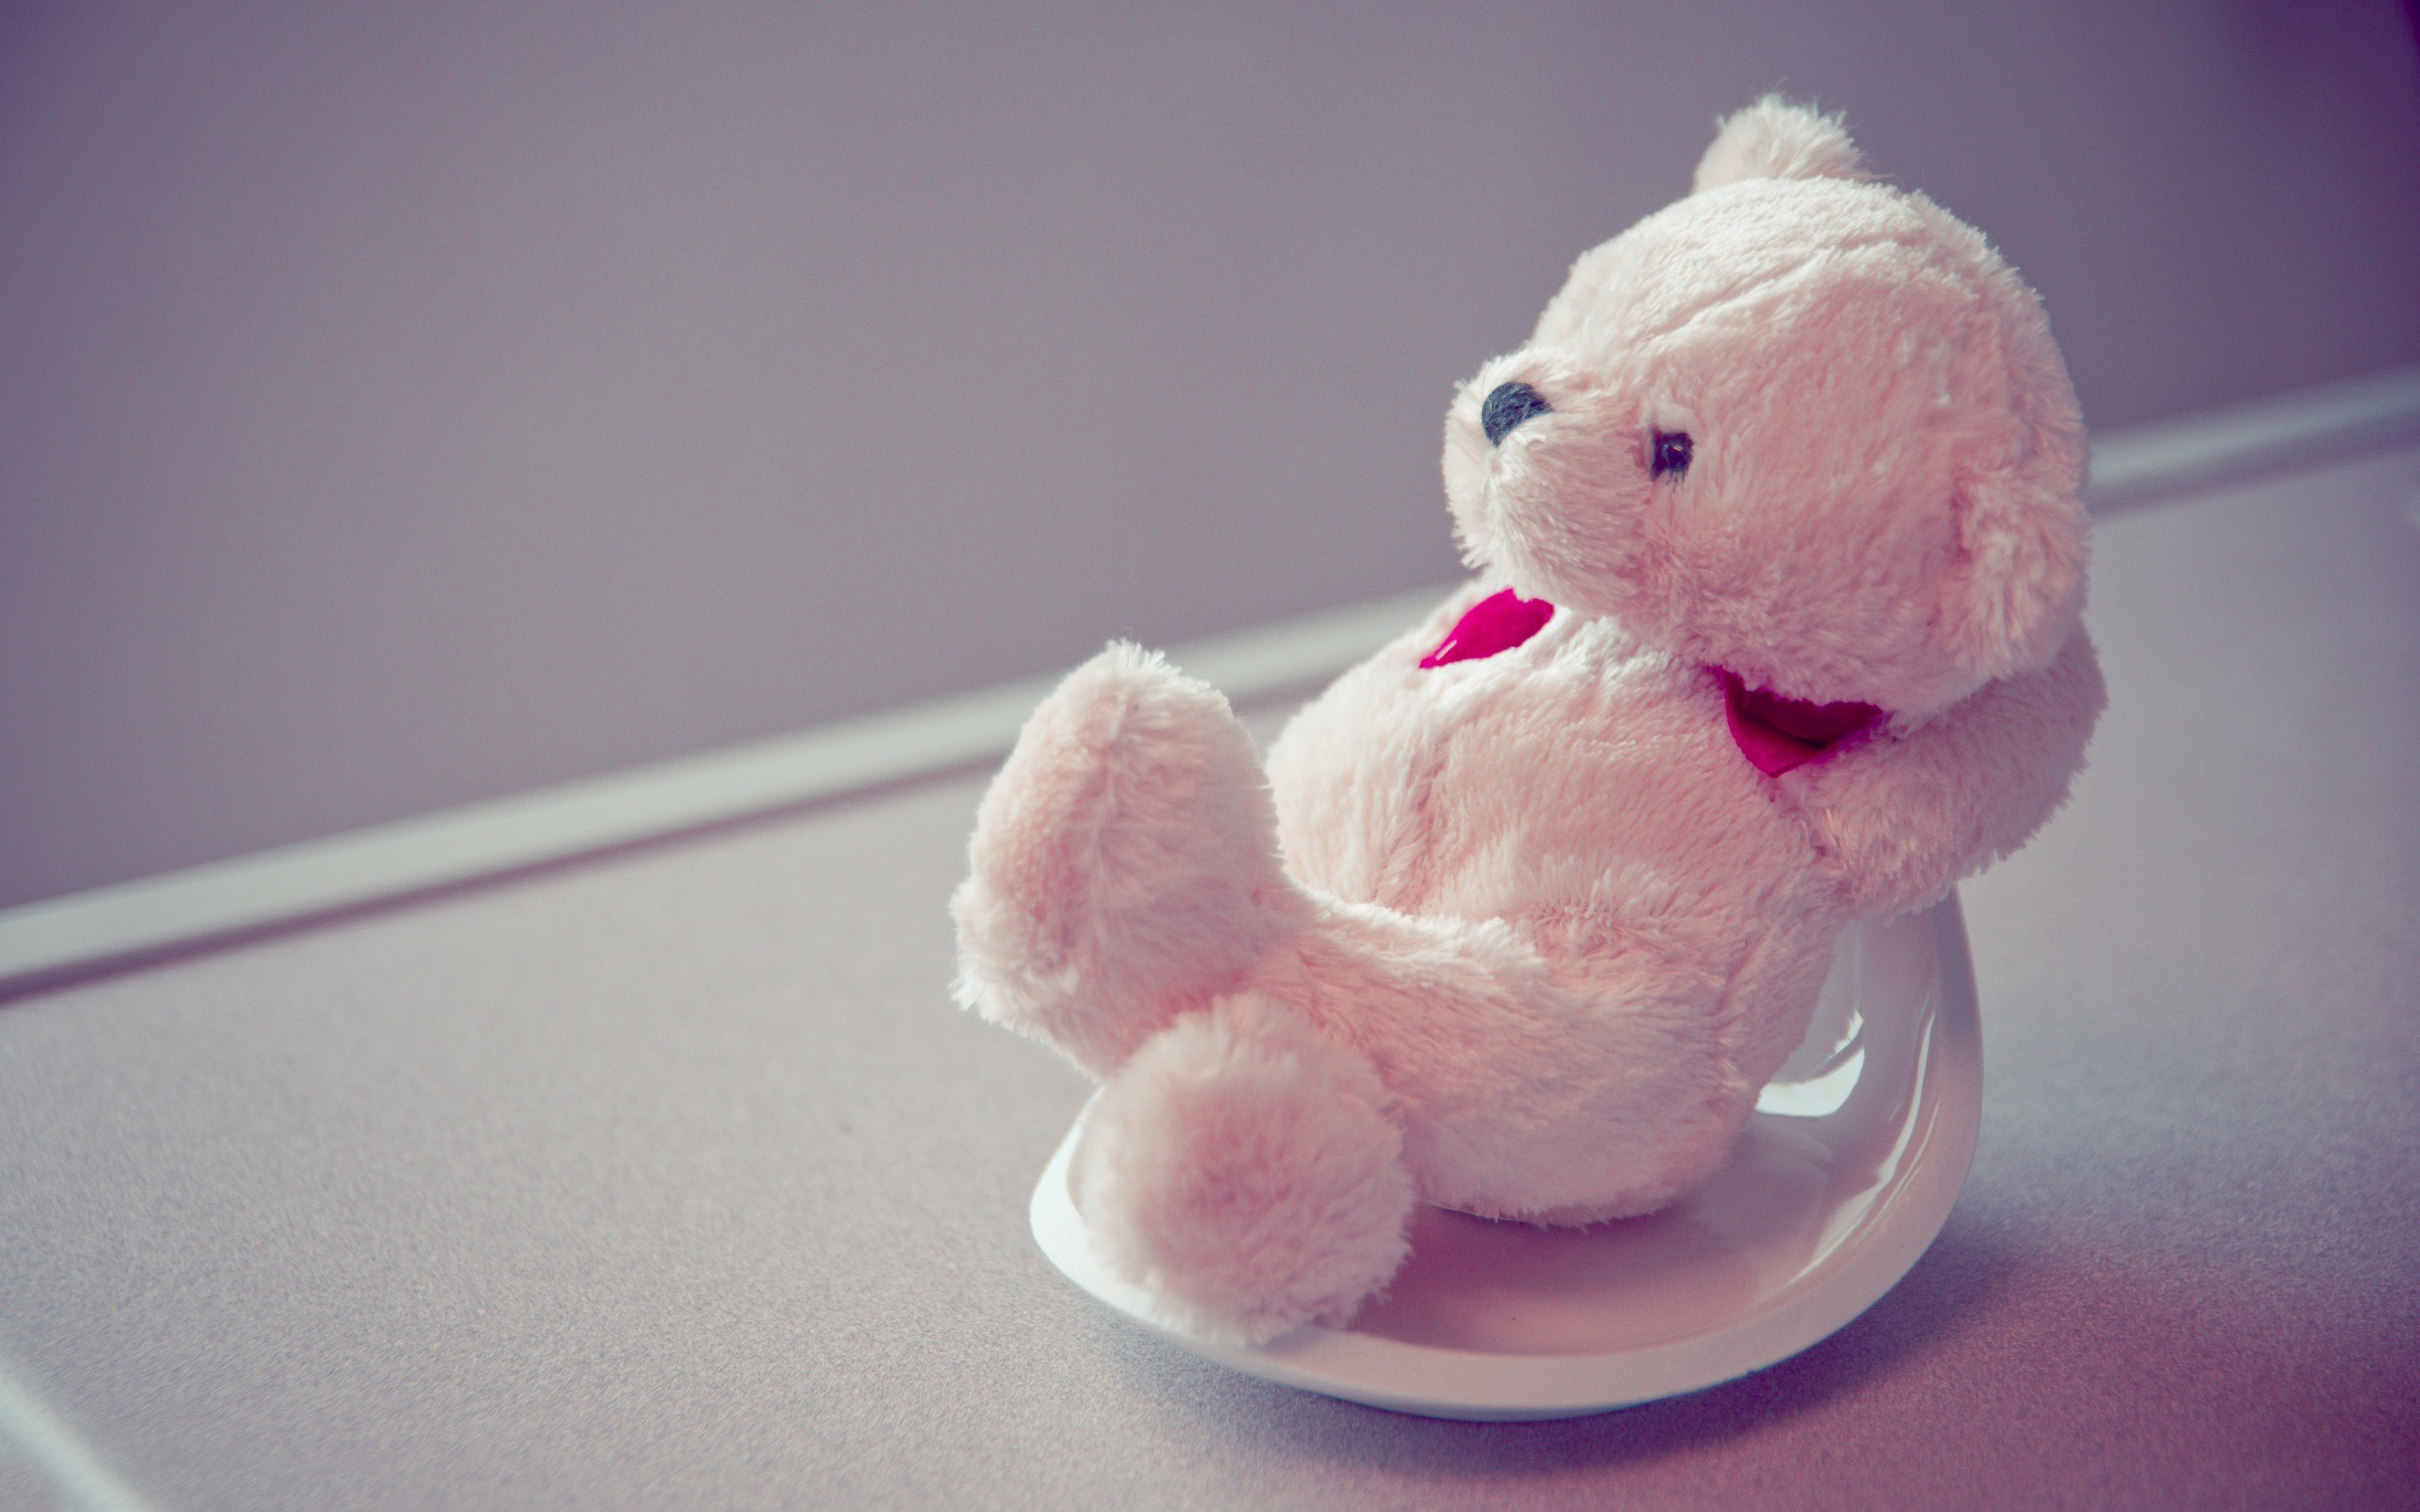 2560x1600 The most relaxed teddy i've ever seen so cute